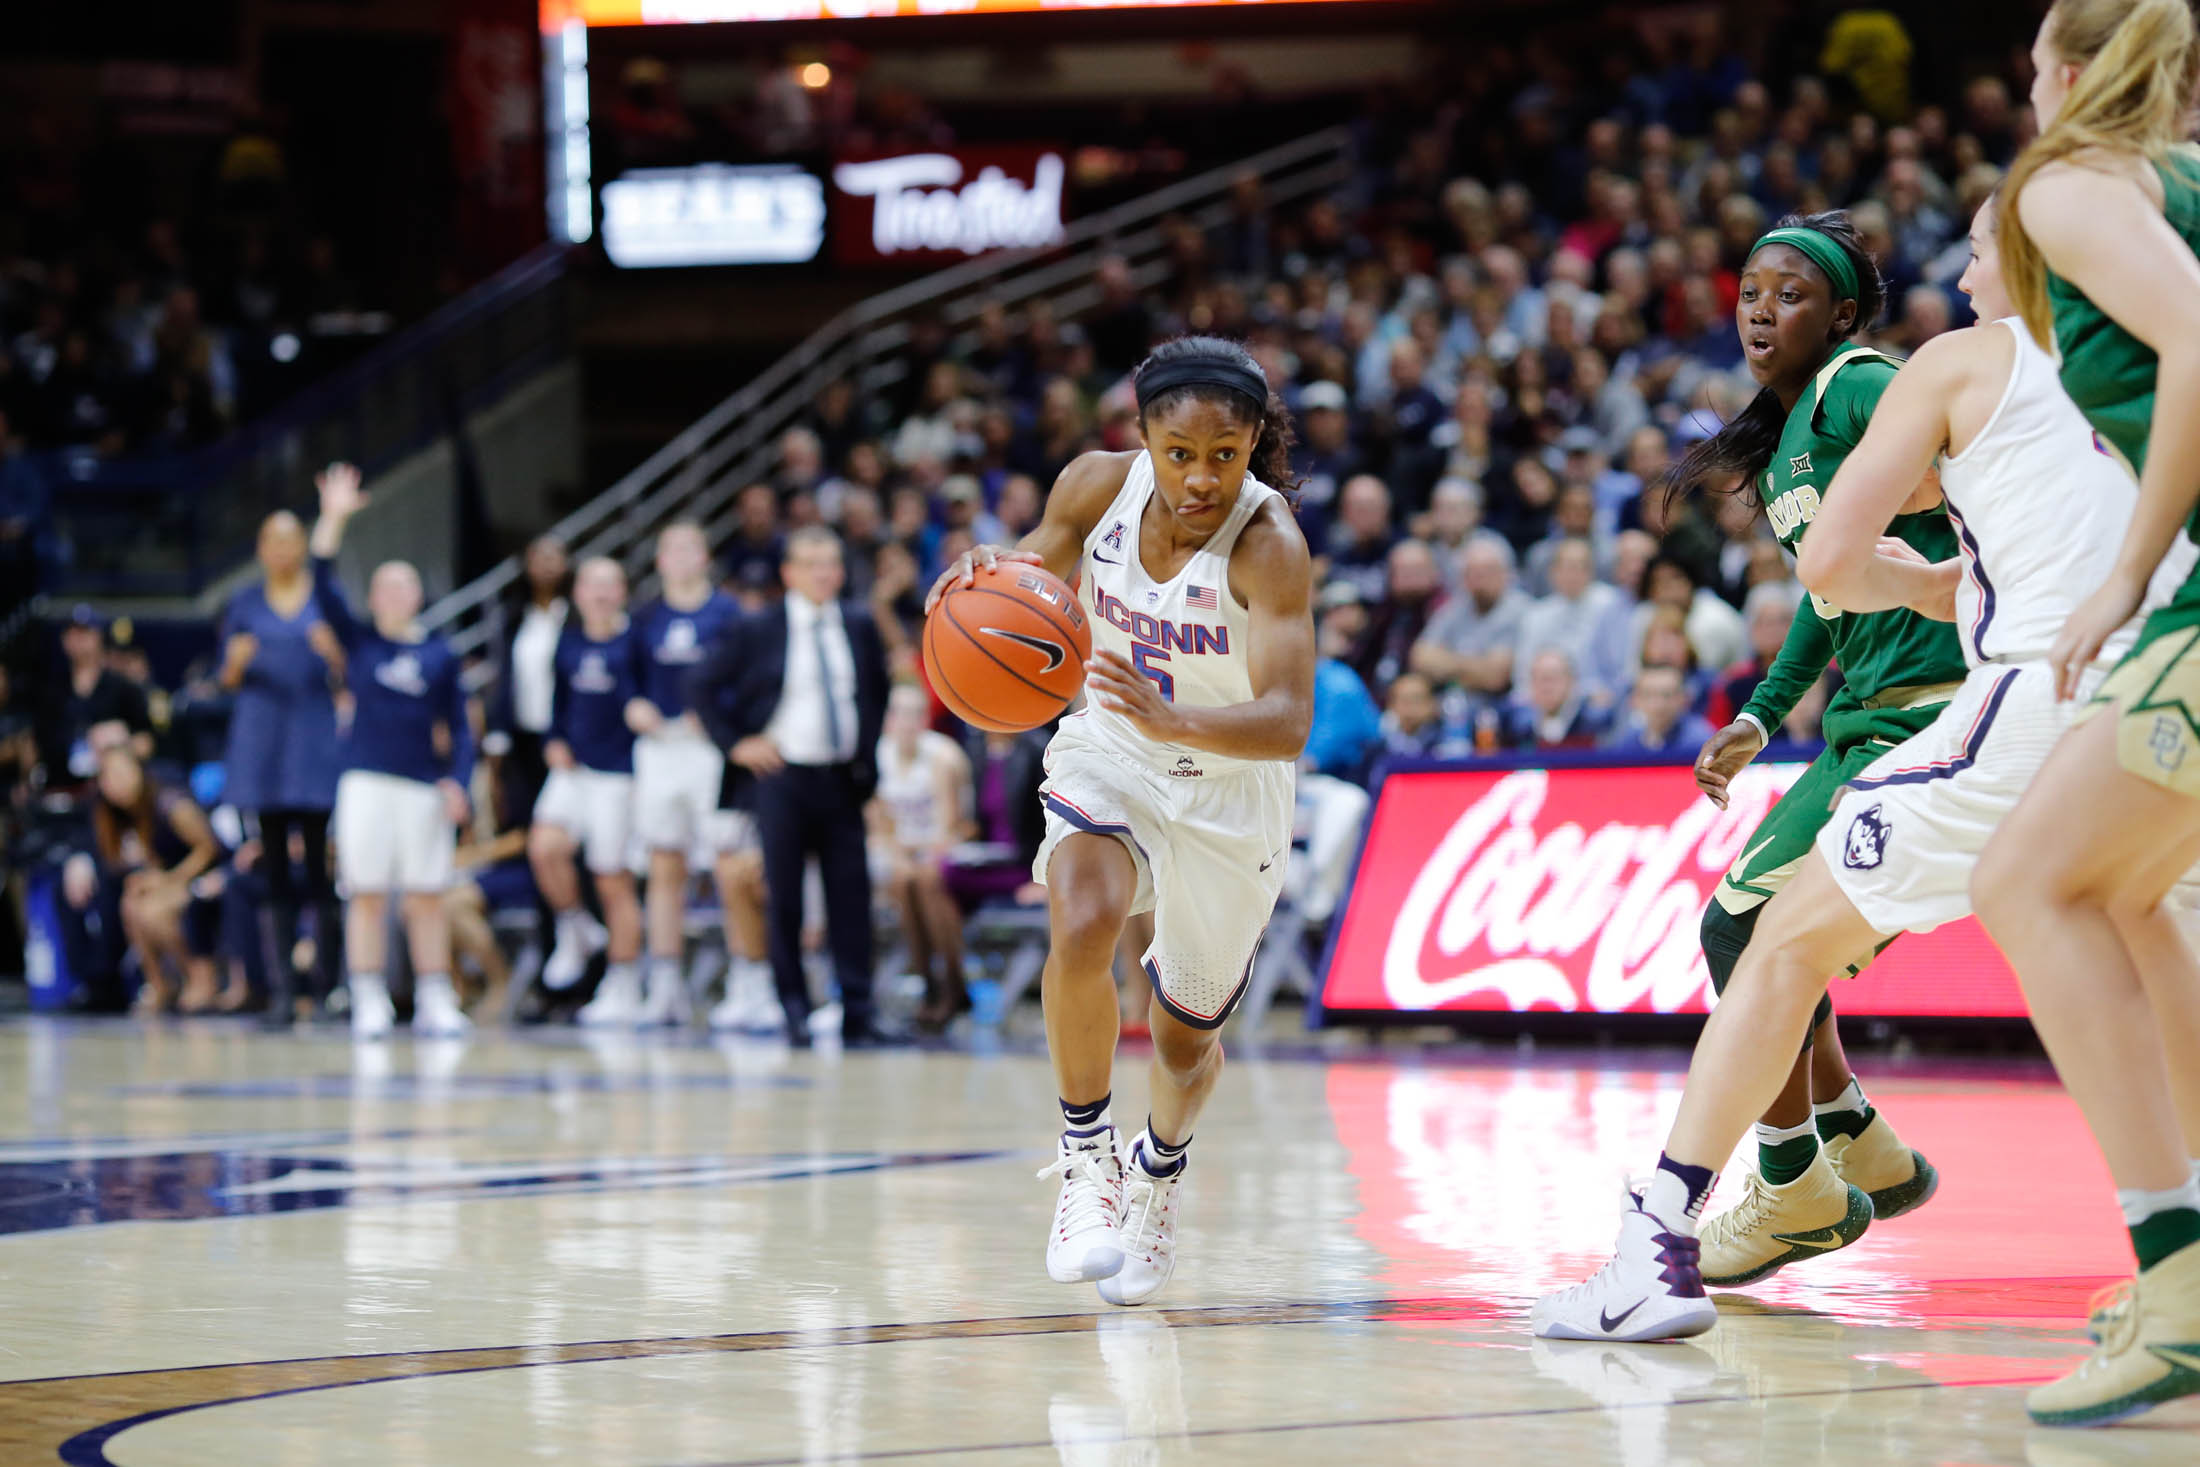 Freshman guard Crystal Dangerfield starts a layup Baylor University on Nov. 11, 2016 in Gampel Pavilion. Dangerfield will return to play against Temple. (Tyler Benton/The Daily Campus)